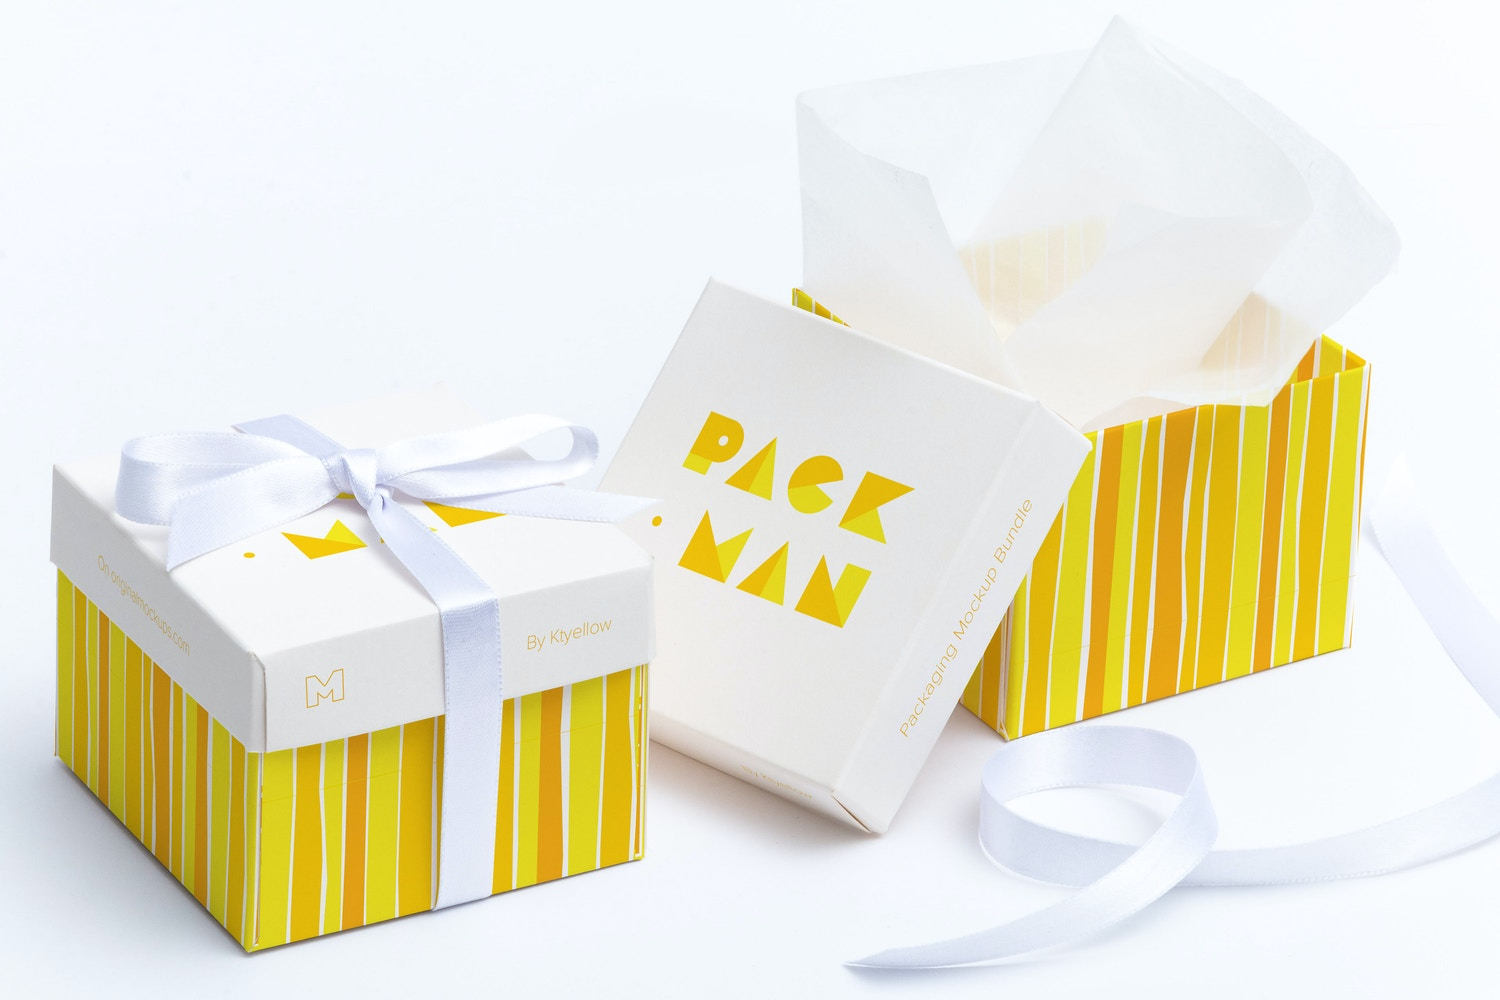 Cube Gift Box Mockup 01 by Ktyellow  on Original Mockups